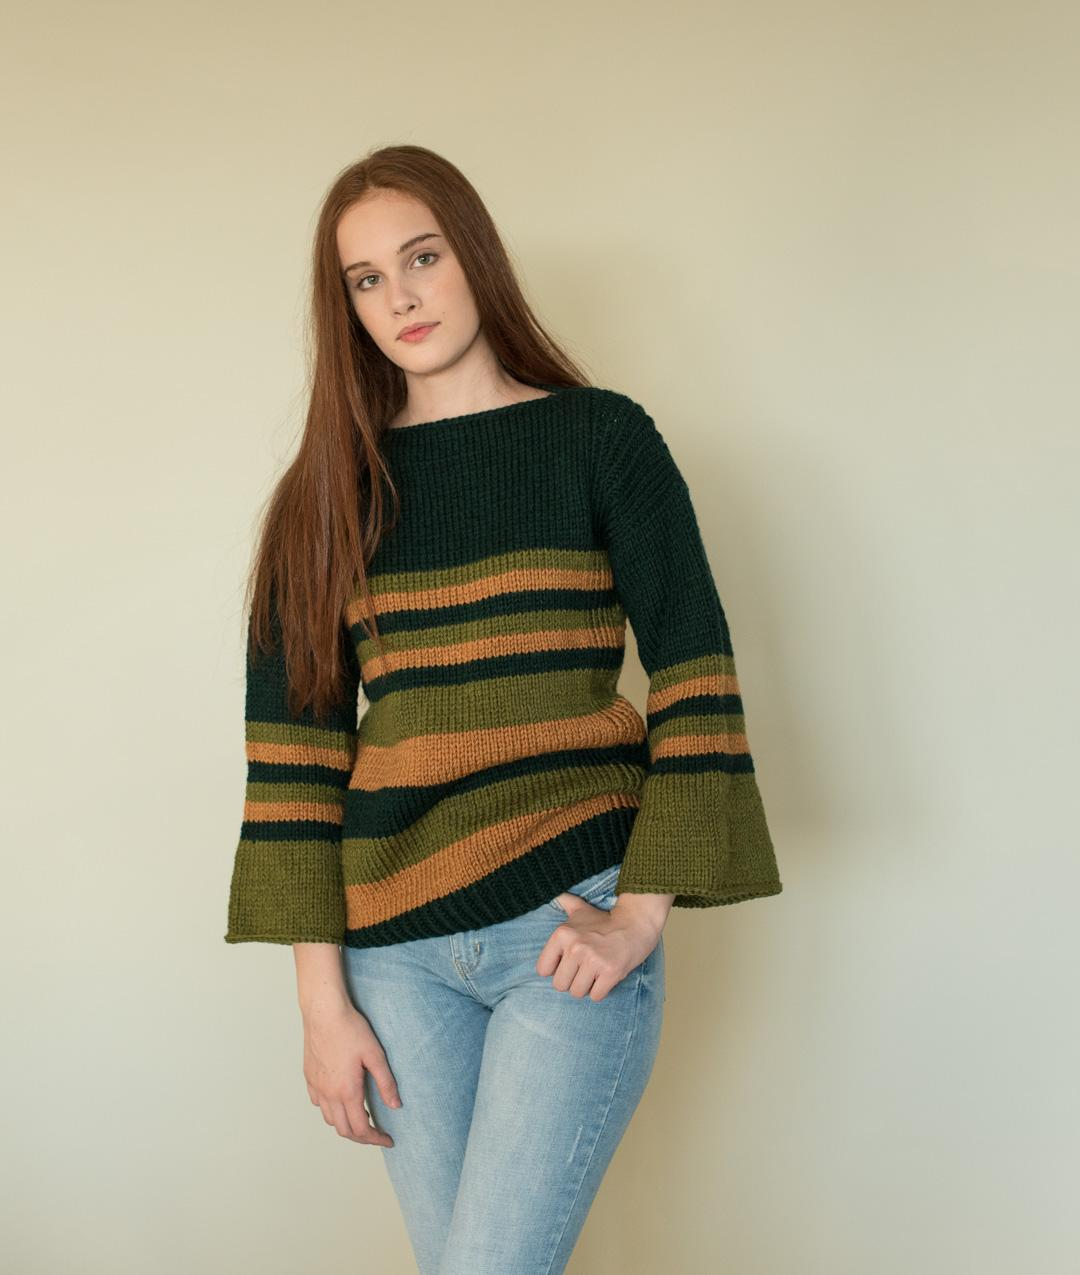 Sweaters and Tops - Wool - Maine Sweater - 1